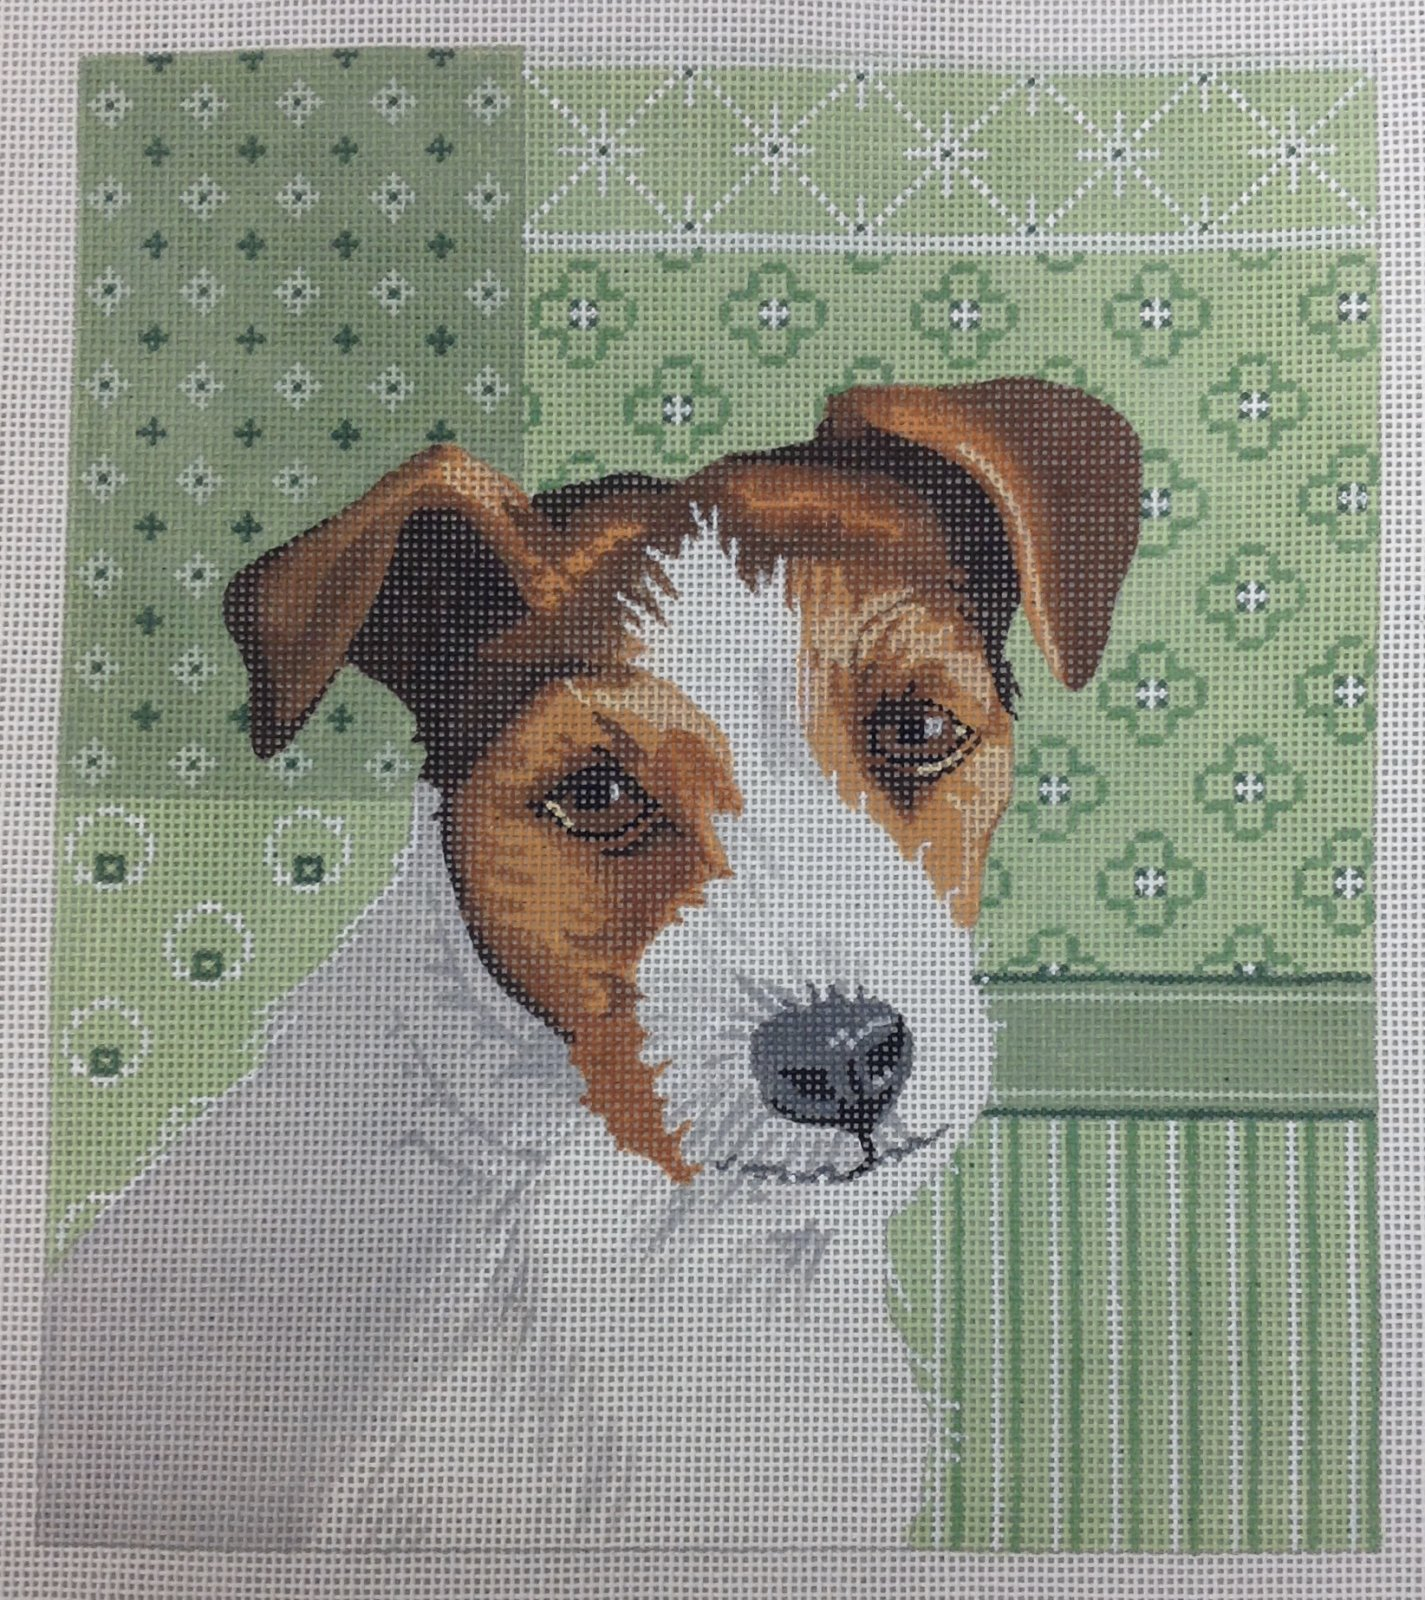 jack russell*